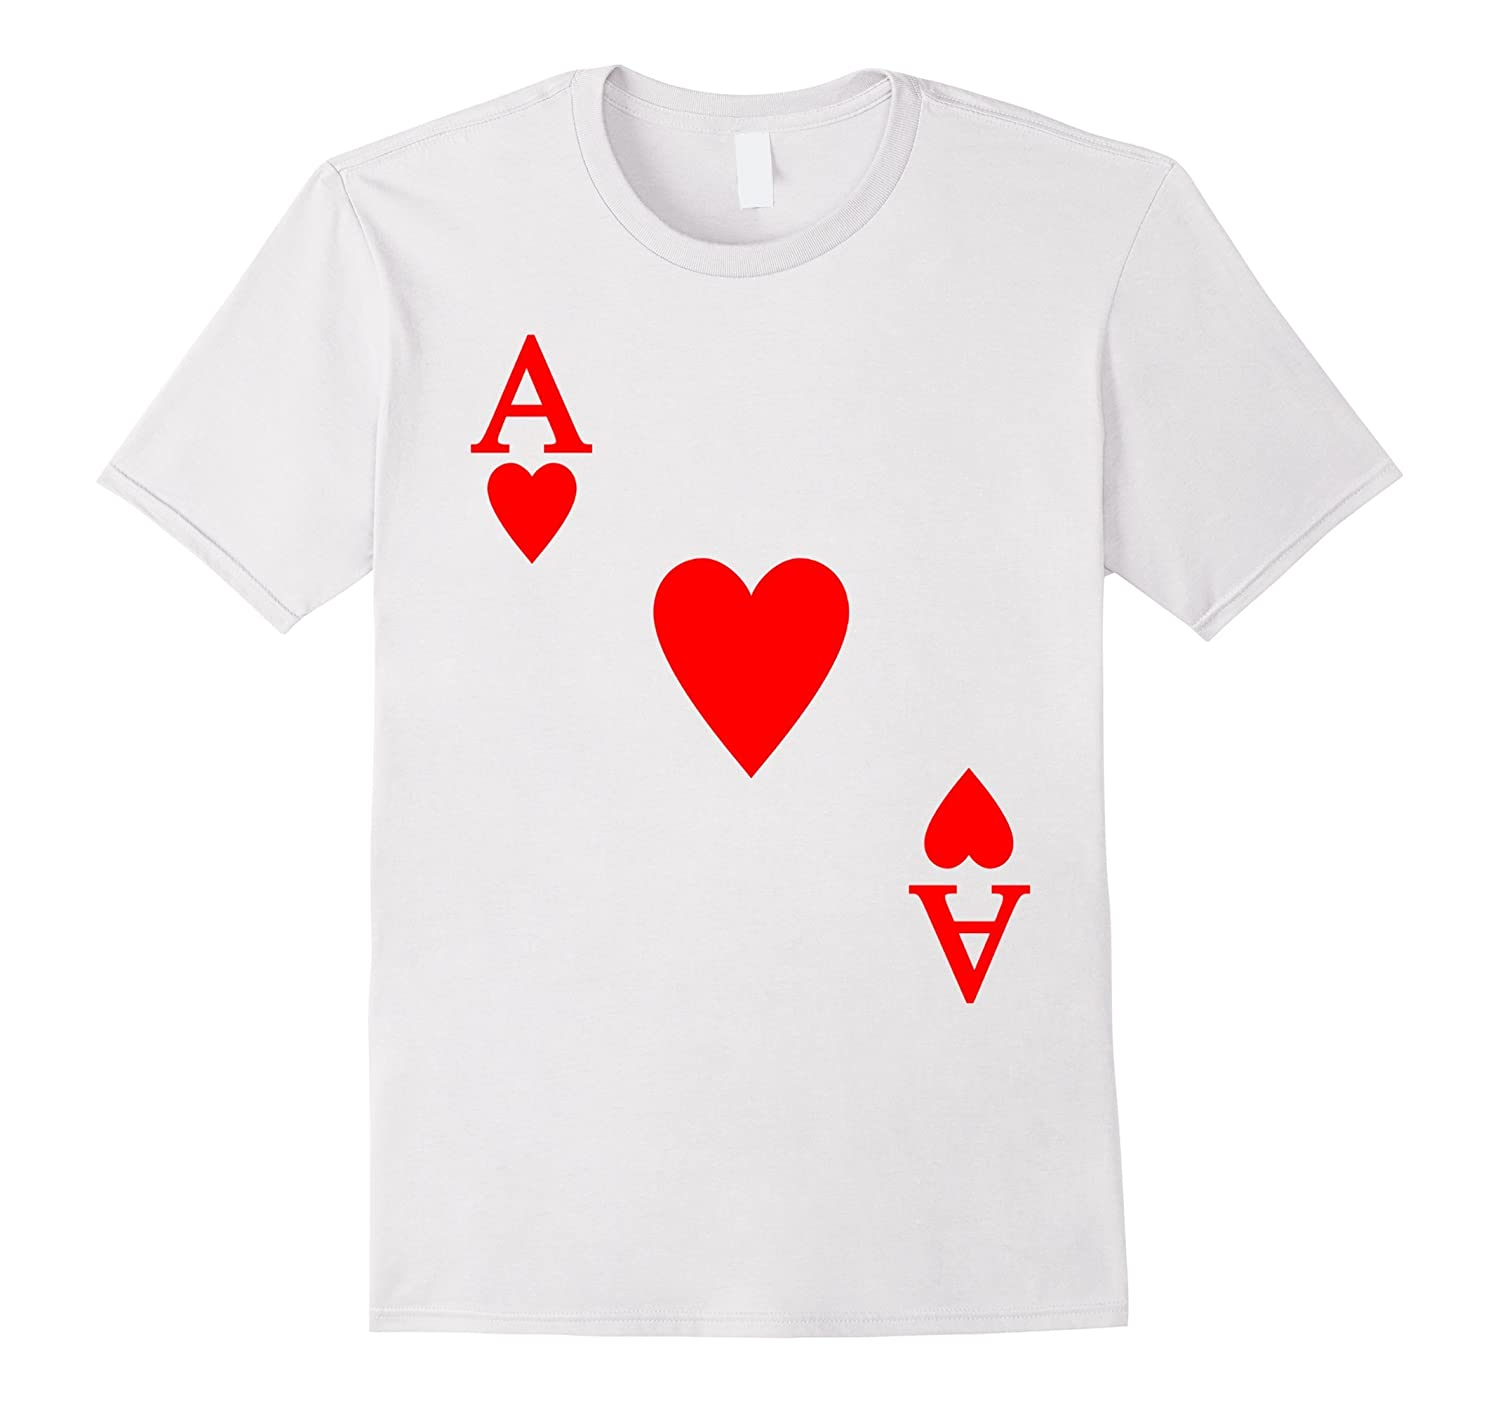 Ace of Heart Halloween Costume T-shirt-ANZ